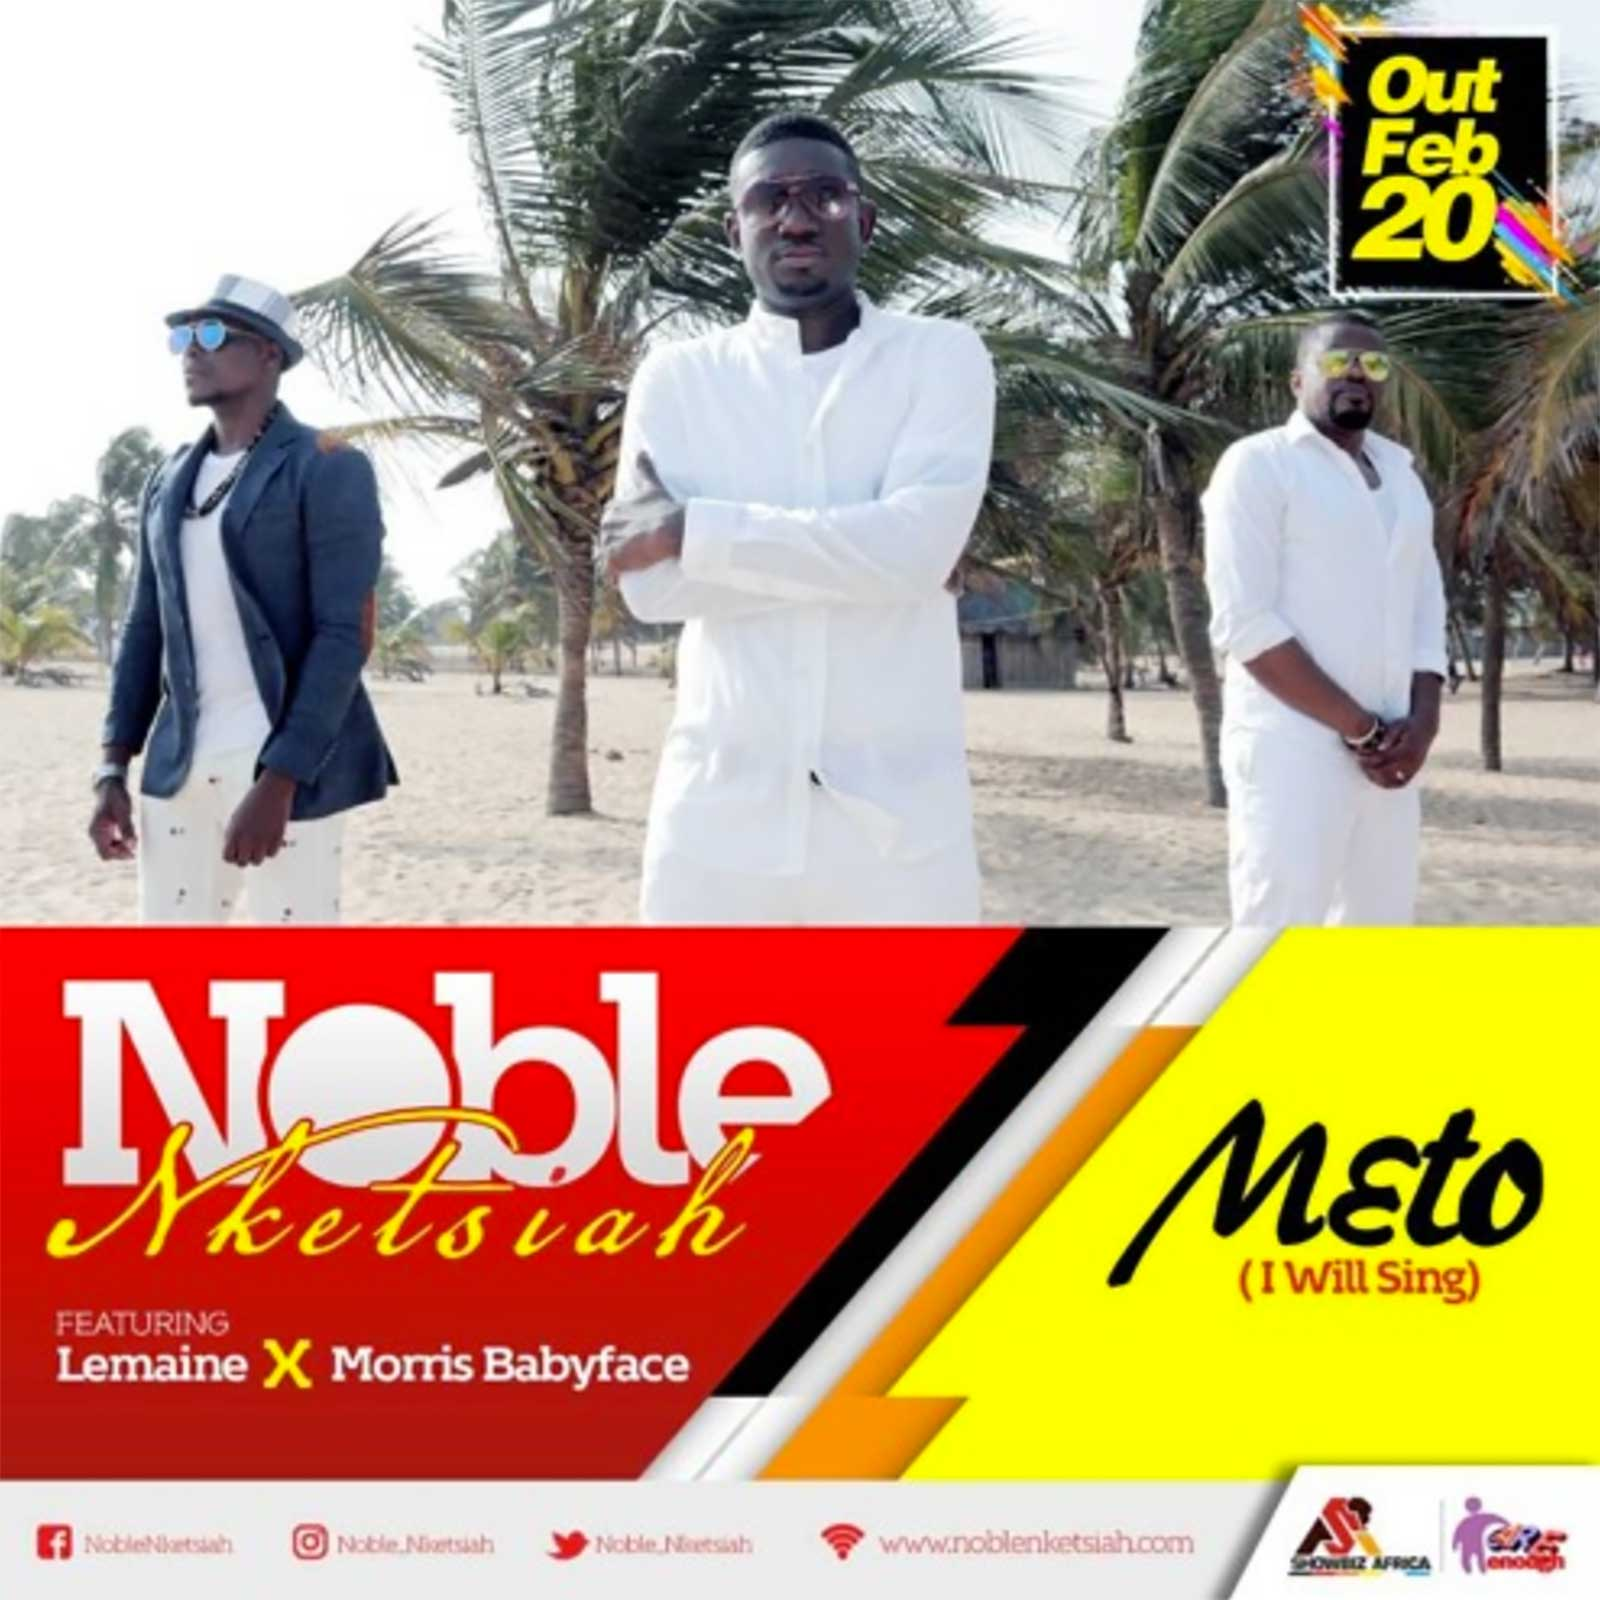 M3to (I Will Sing) by Noble Nketsiah